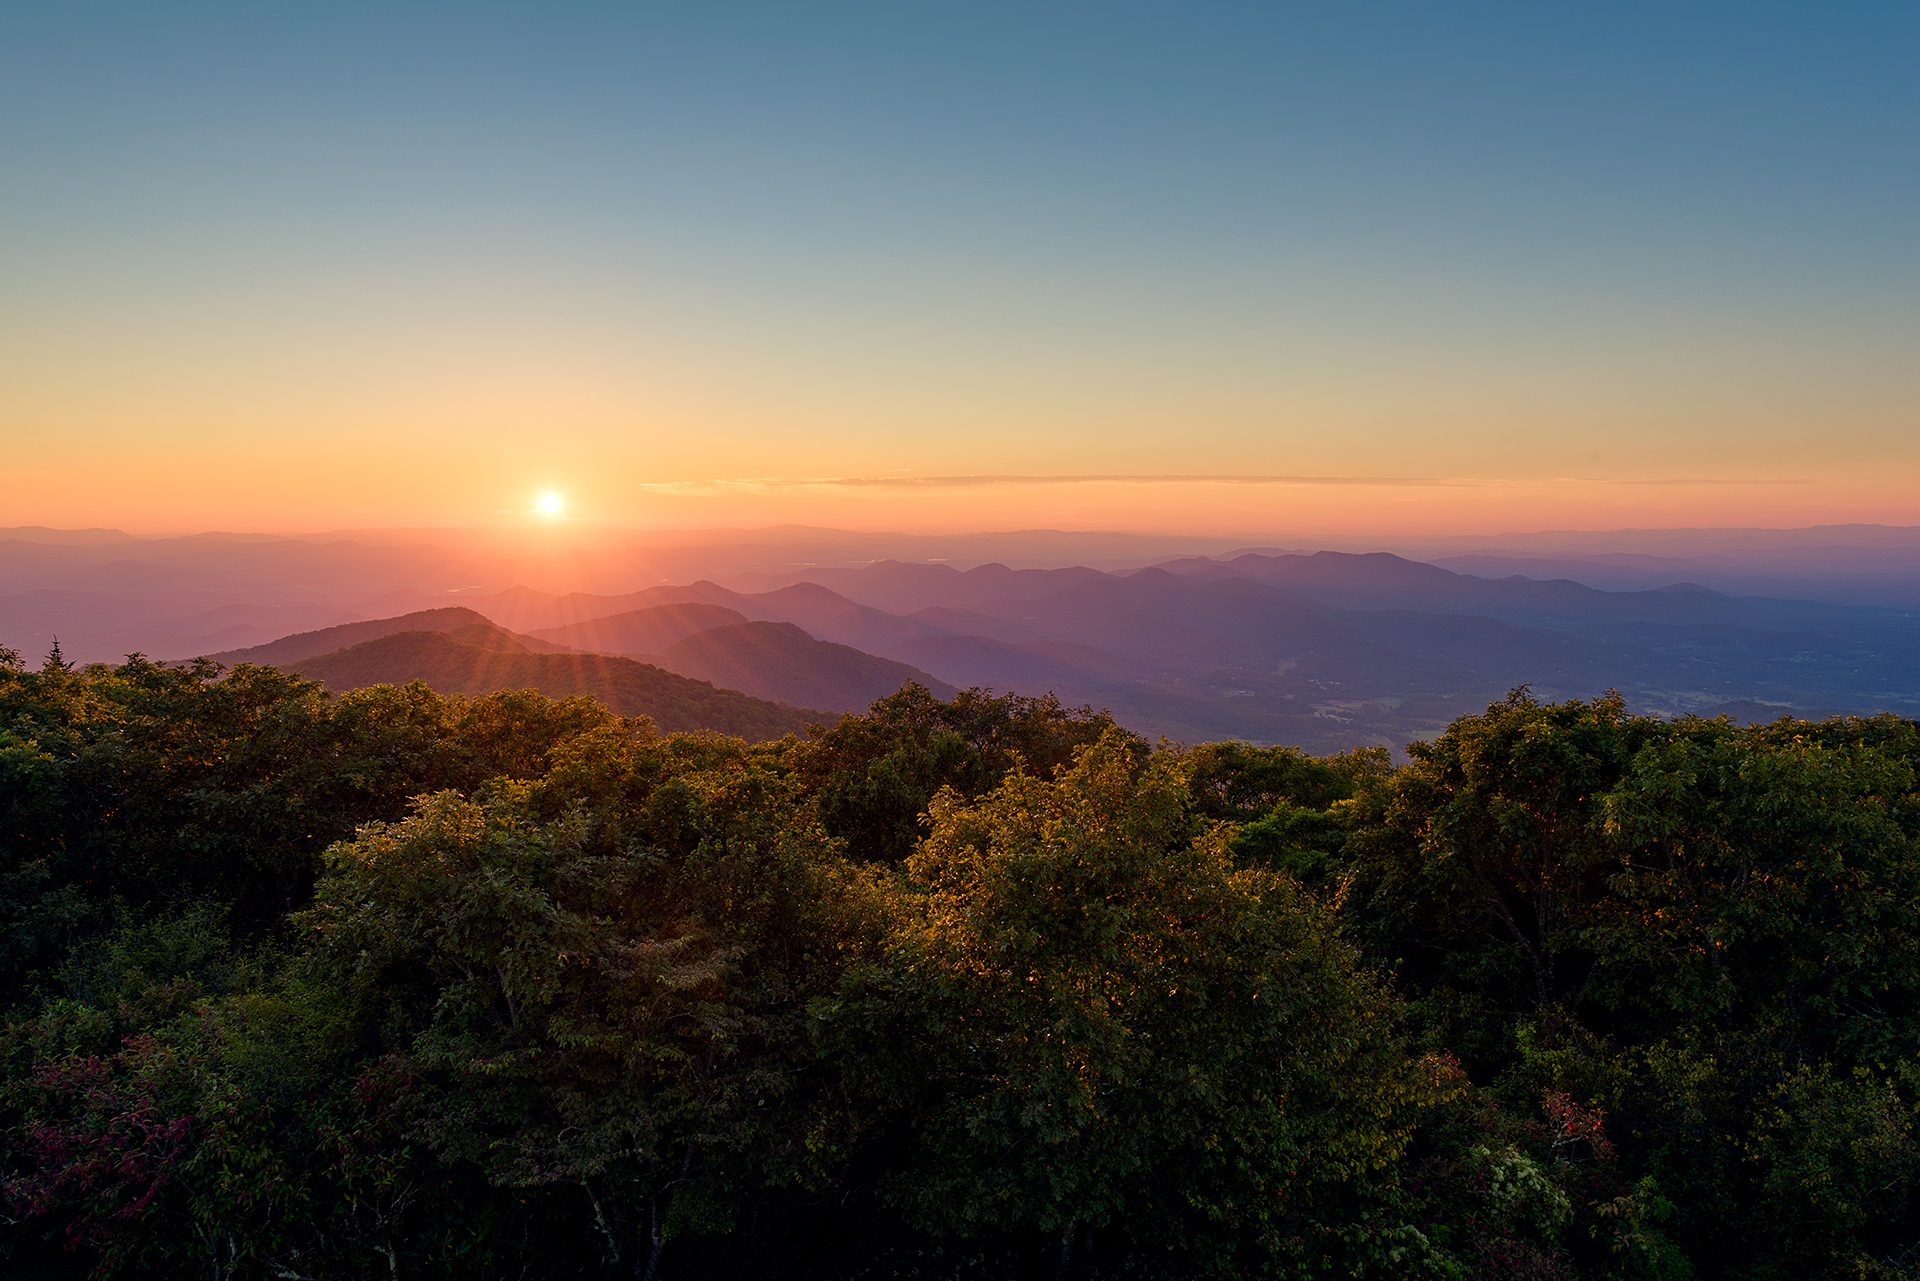 Brasstown Bald & The Burst